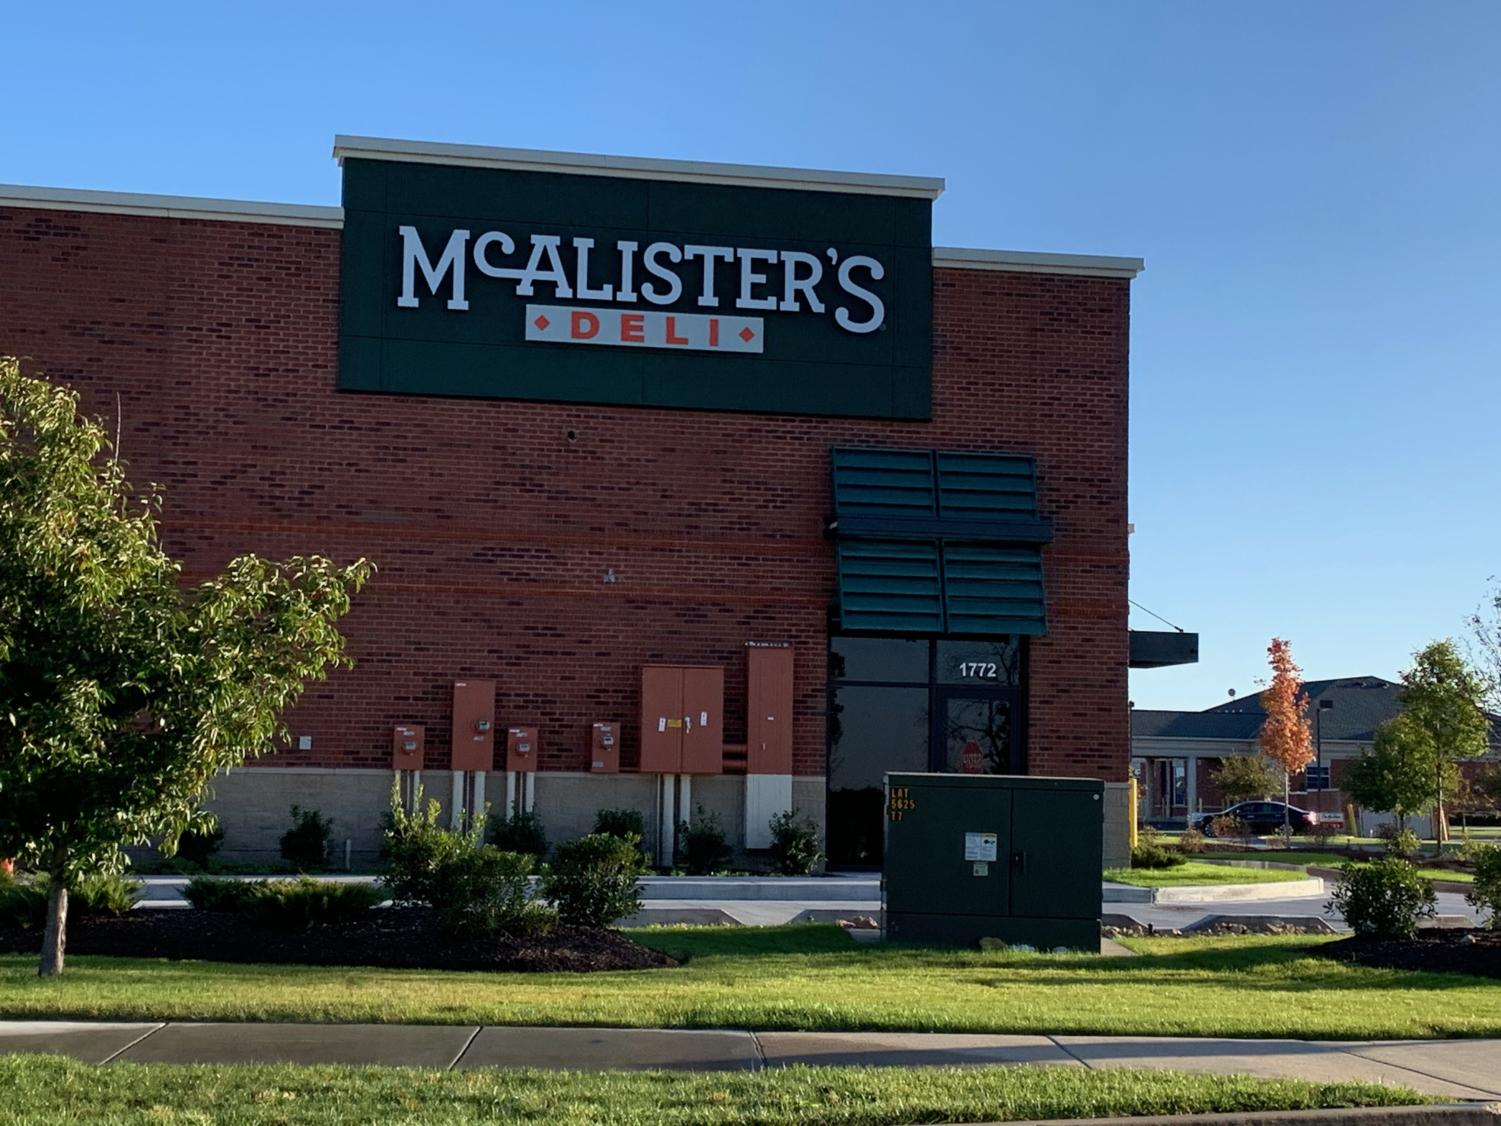 One of the new Restaurants, McAlister's, that are coming to Wentzville.